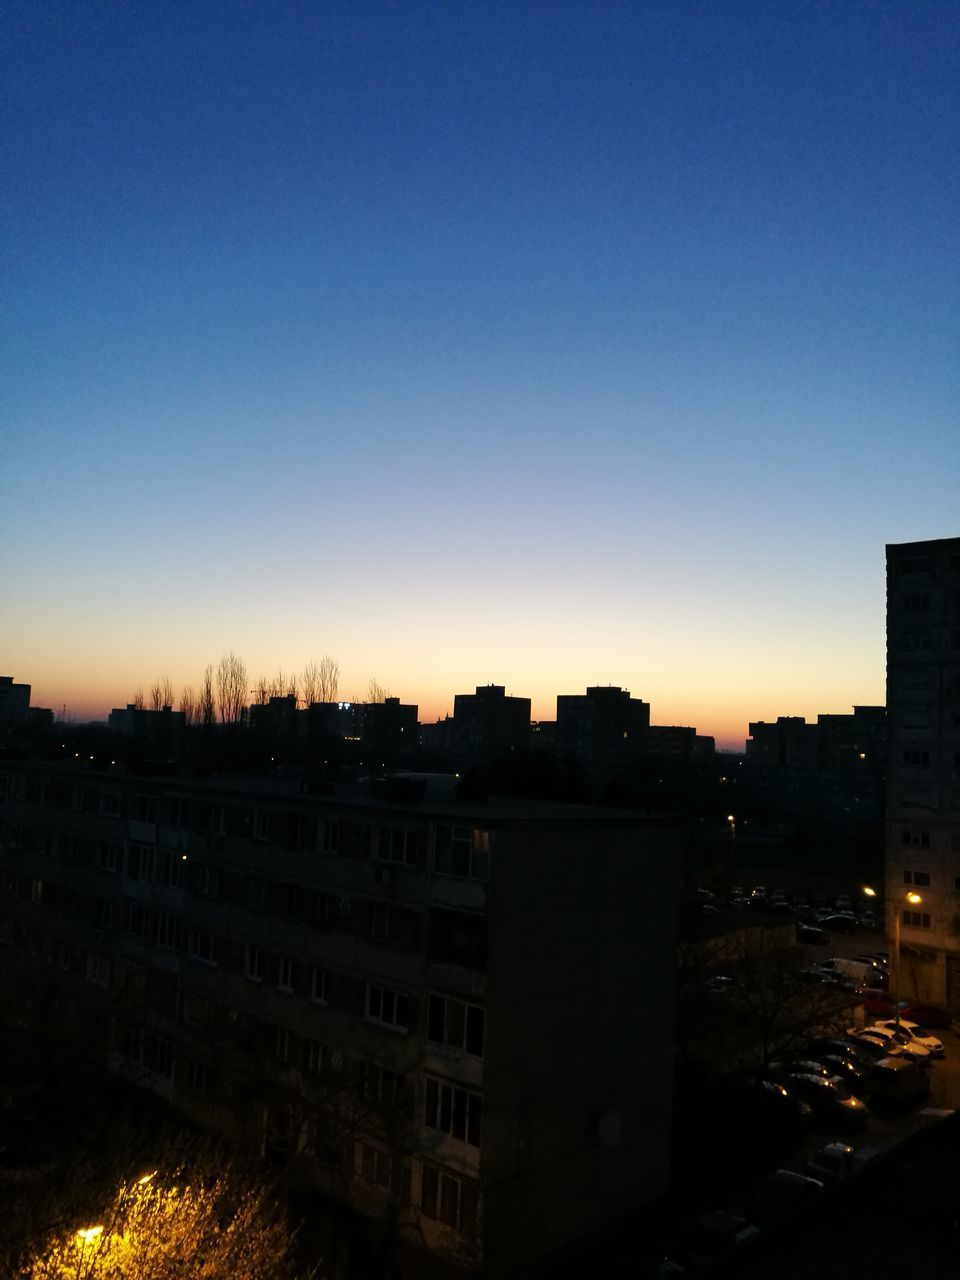 sunset, architecture, clear sky, no people, silhouette, building exterior, city, cityscape, sky, outdoors, nature